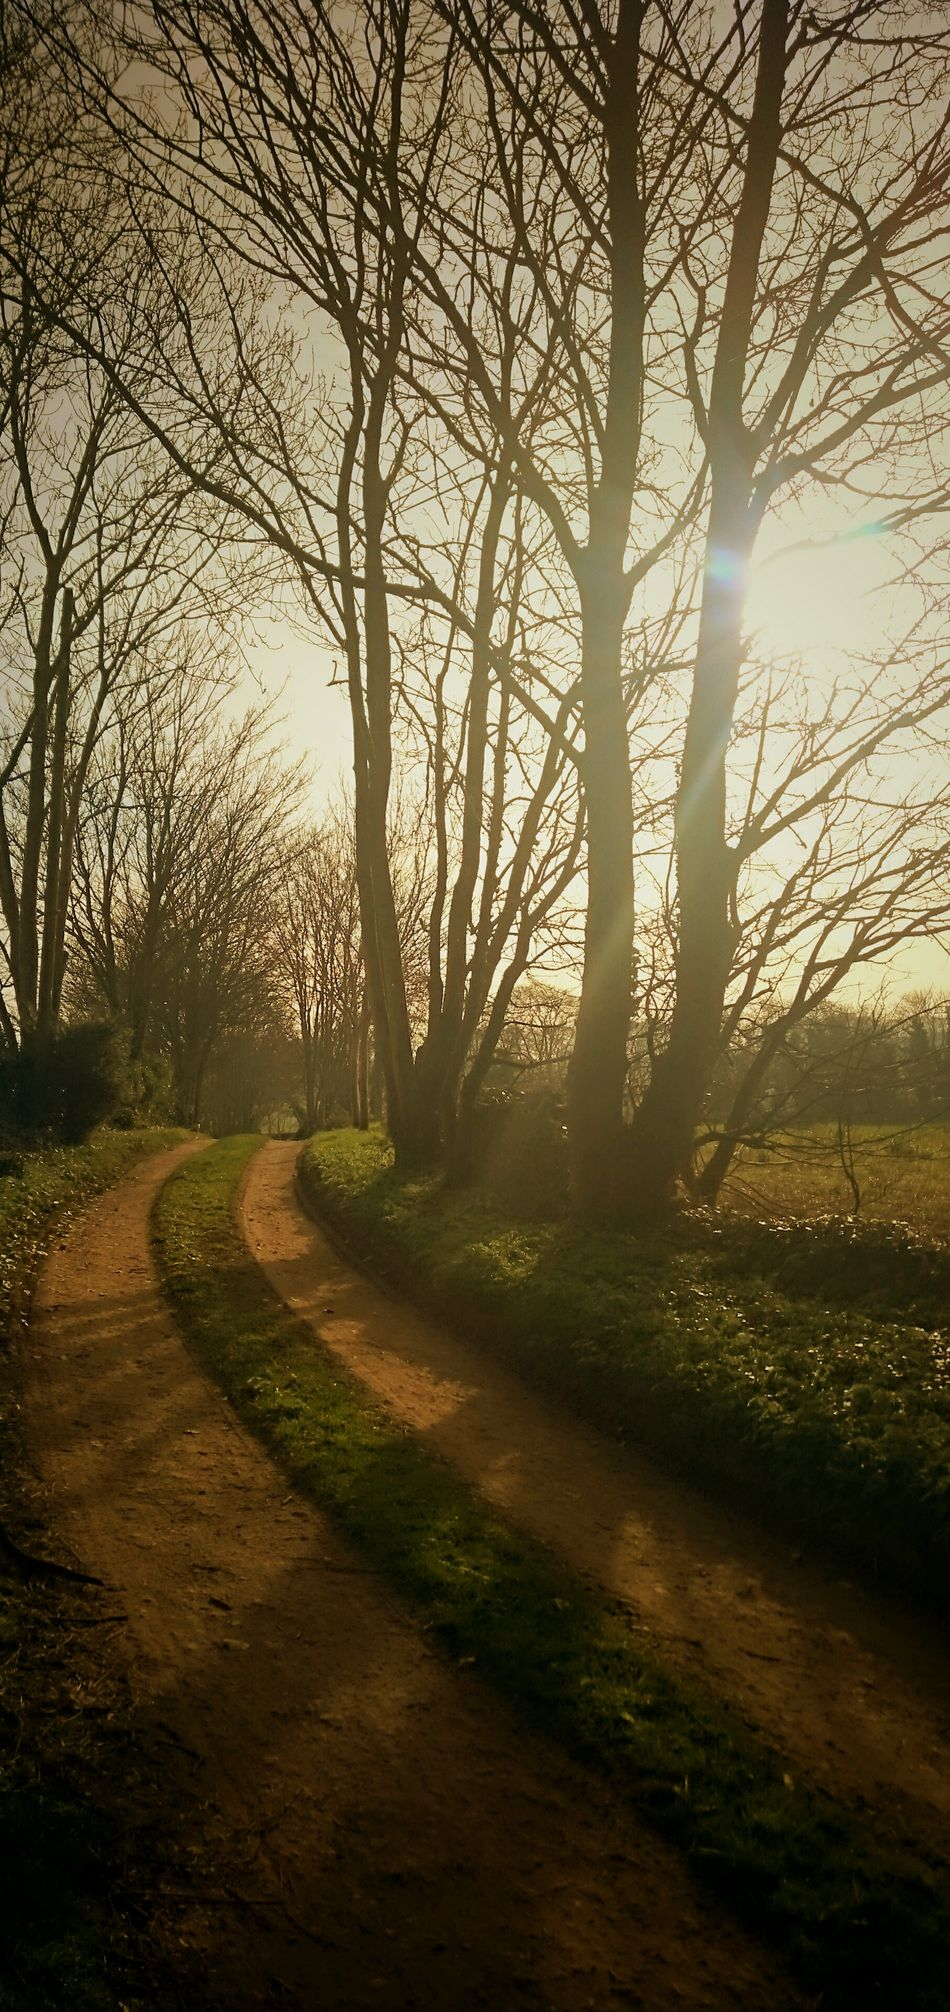 Sunlight Tree Nature Sunbeam Outdoors Shadow Beauty In Nature Sun Sunset No People Scenics Tranquility Landscape EeyemBestEdits Tranquil Scene English Countryside Beauty In Nature English Landscape Paths